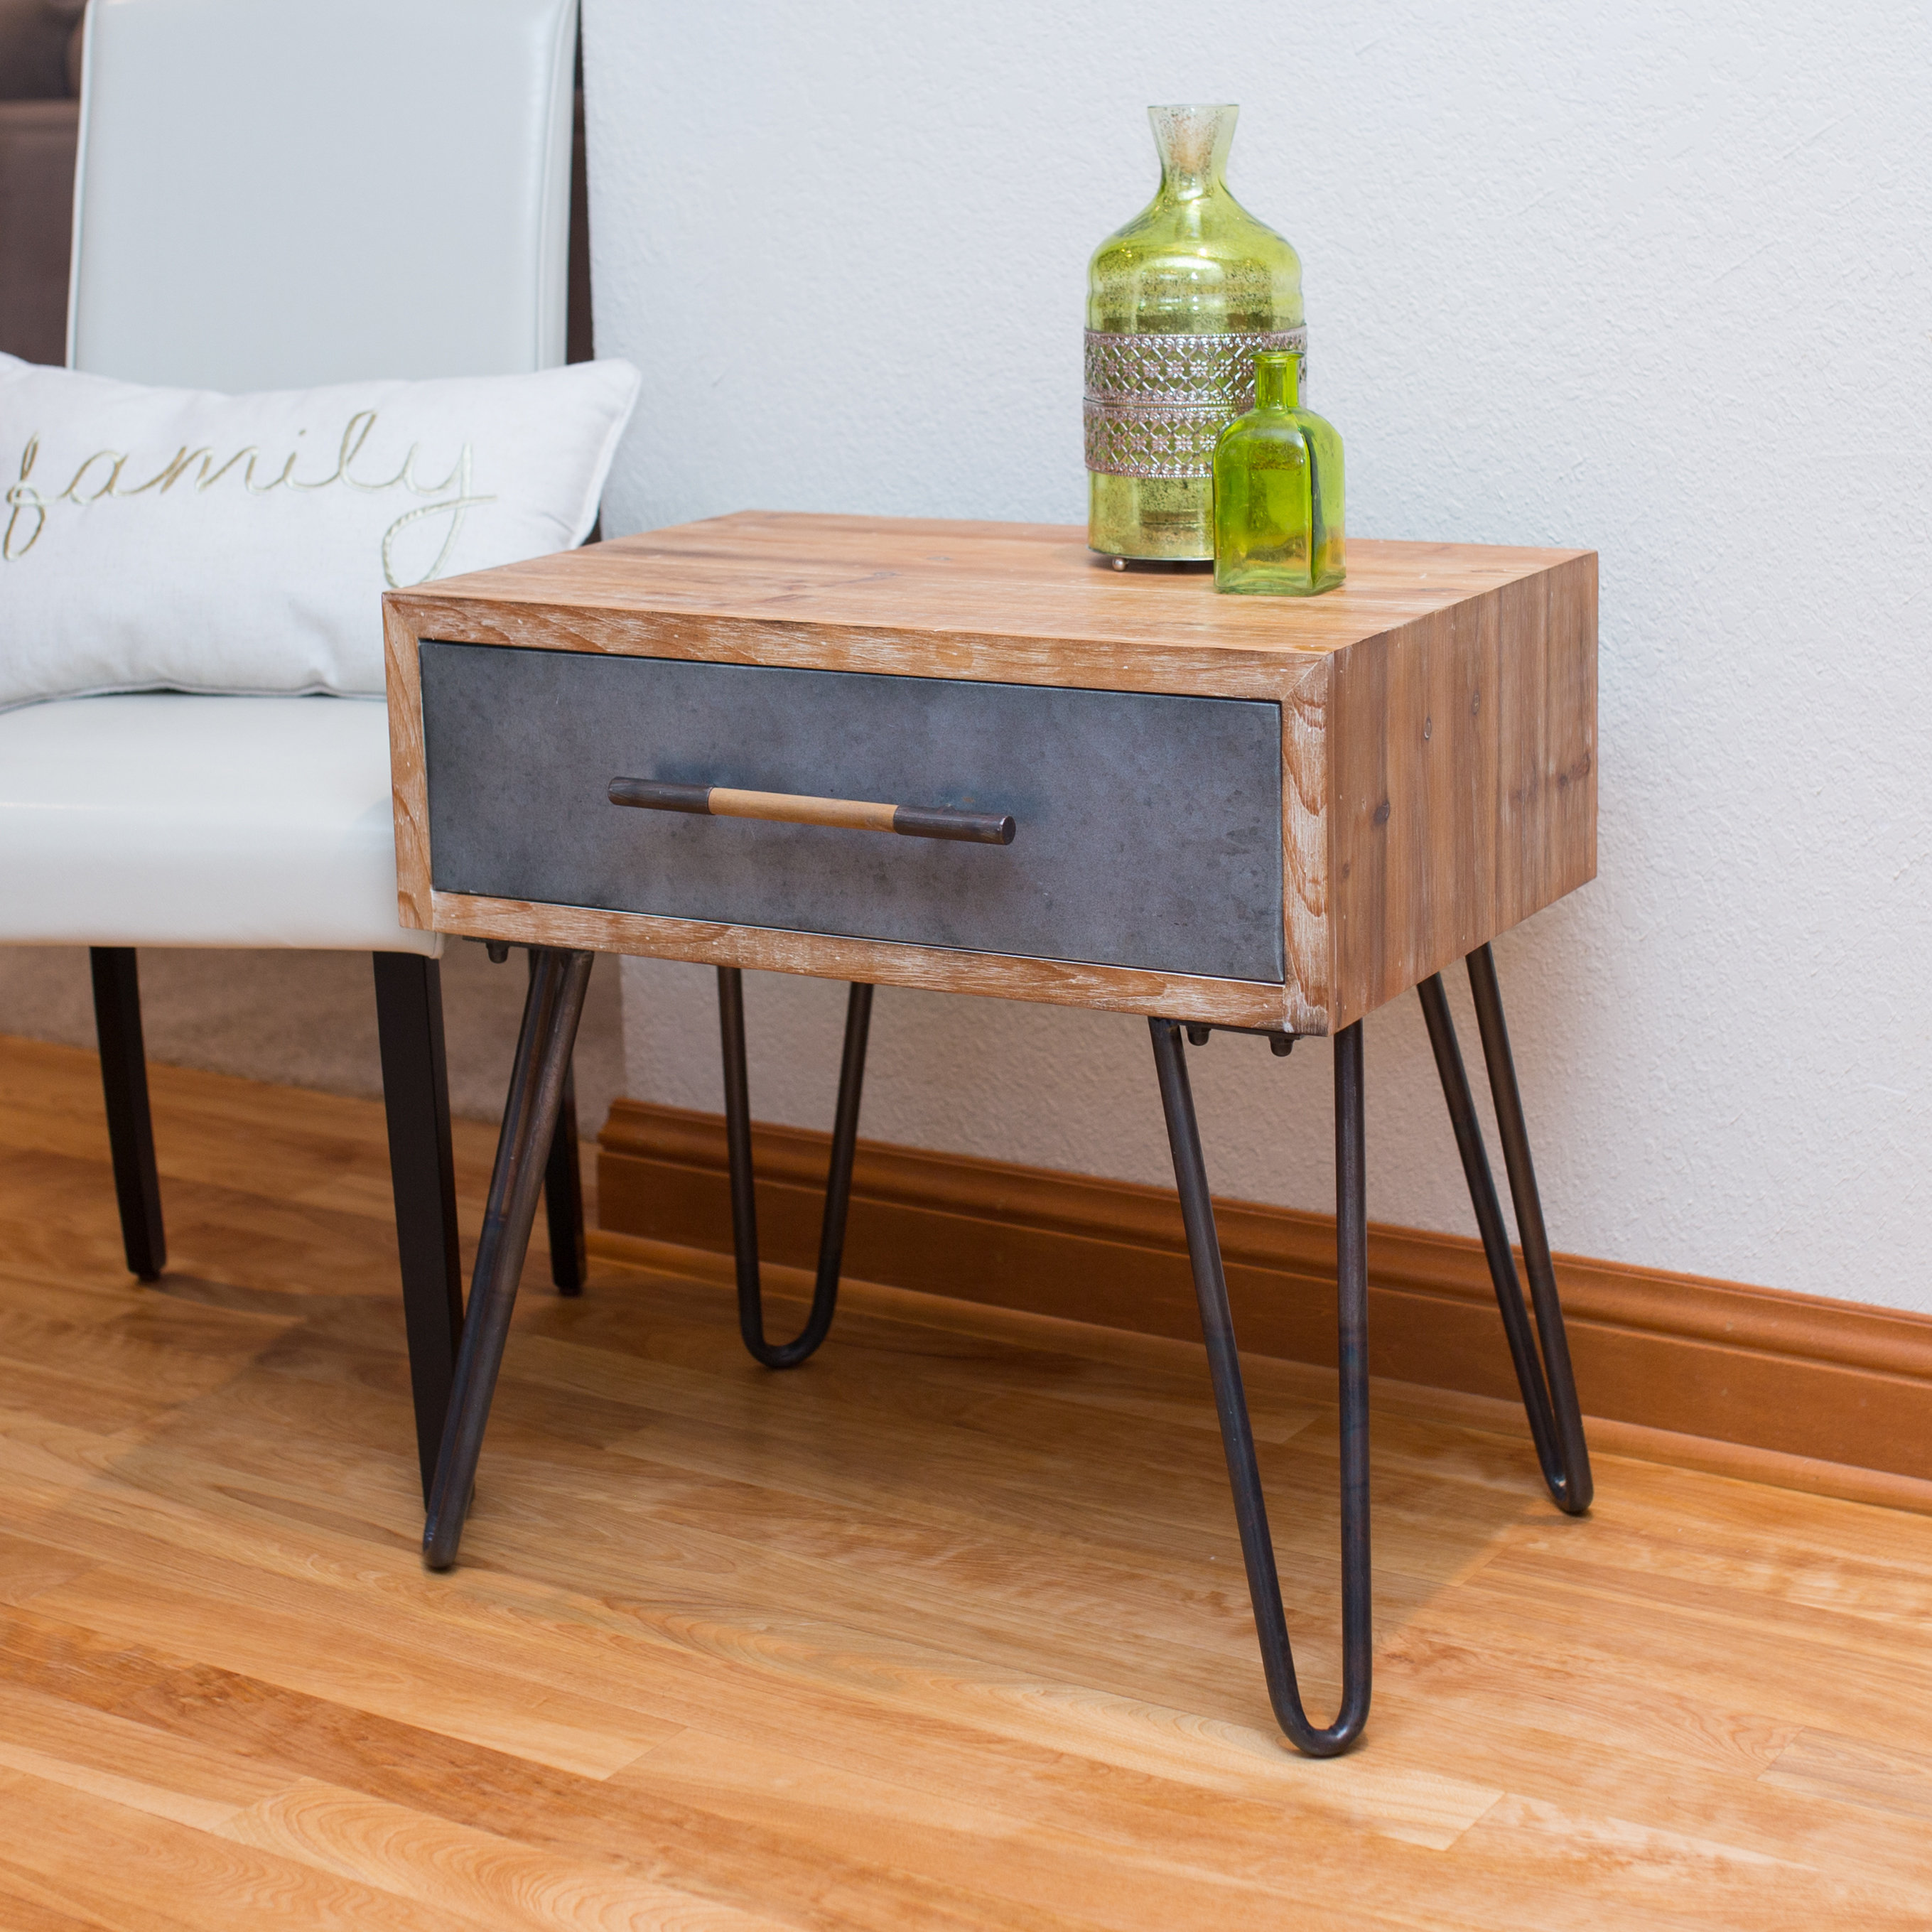 hairpin end table little black tables modern furniture portland patio glass set lay boy recliner short rectangle dresser and nightstand coffee the brick ethan allen american